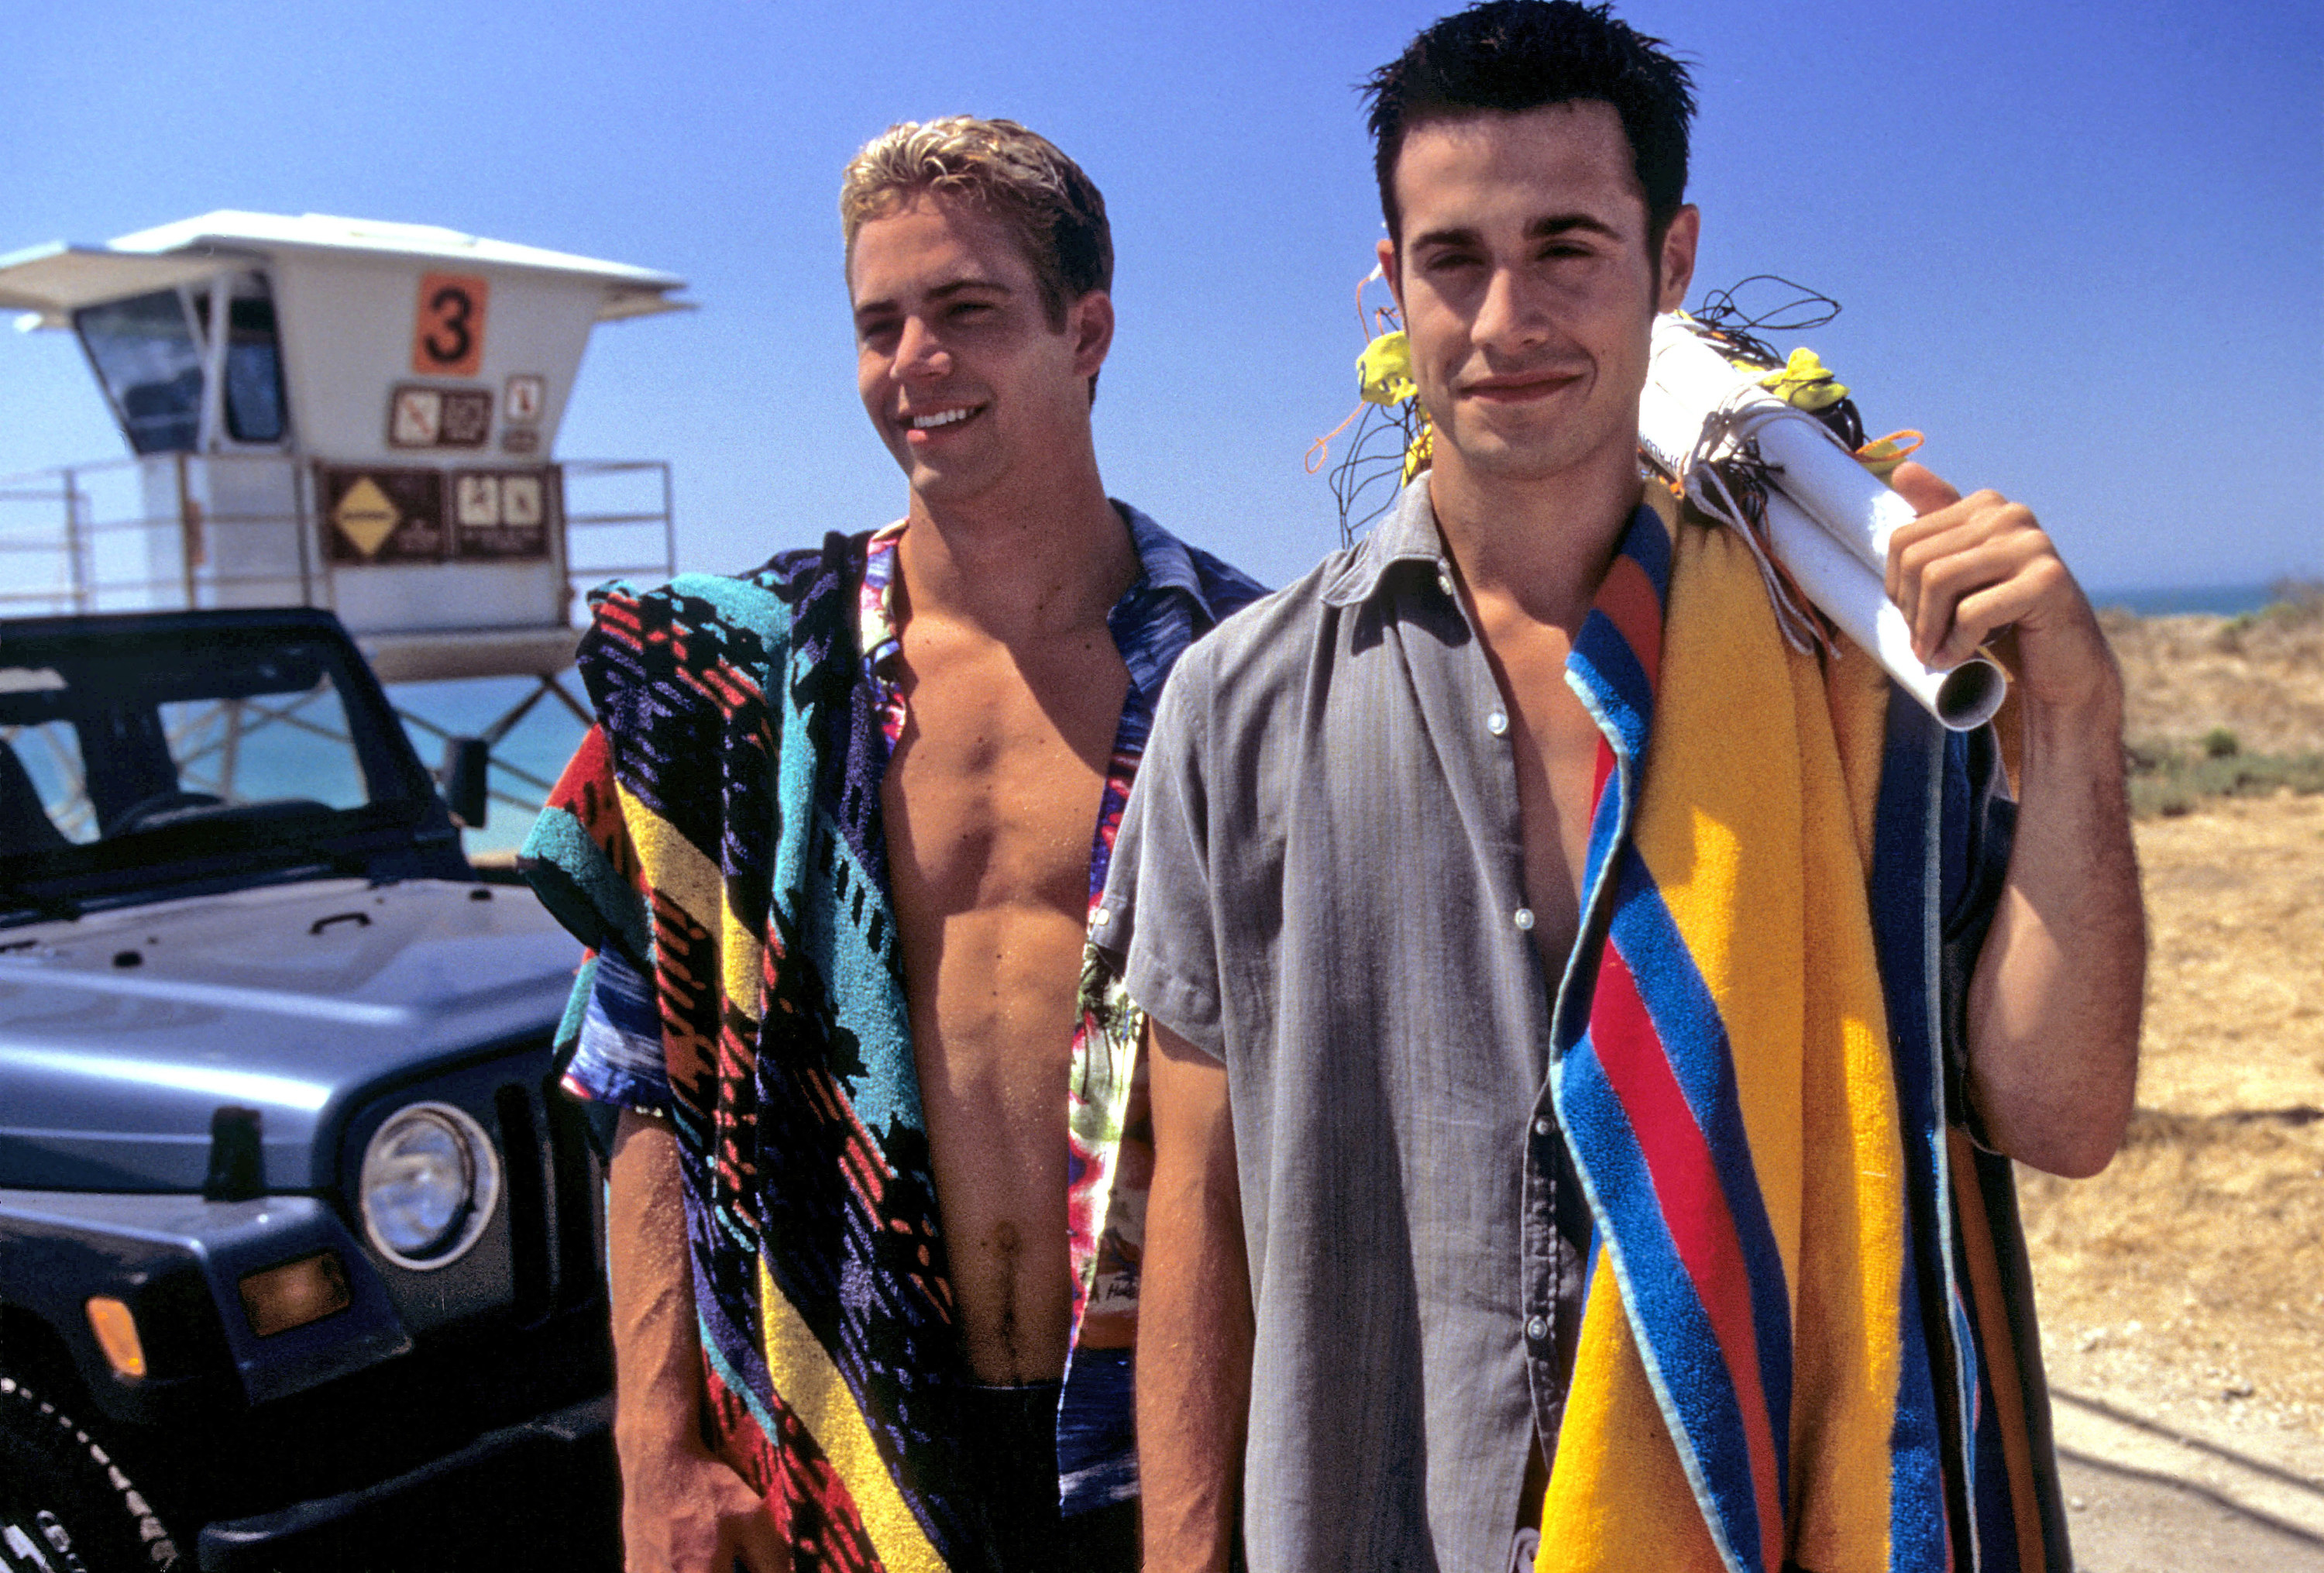 Freddie and Paul stand next to each other on the beach and smile in a scene from the film